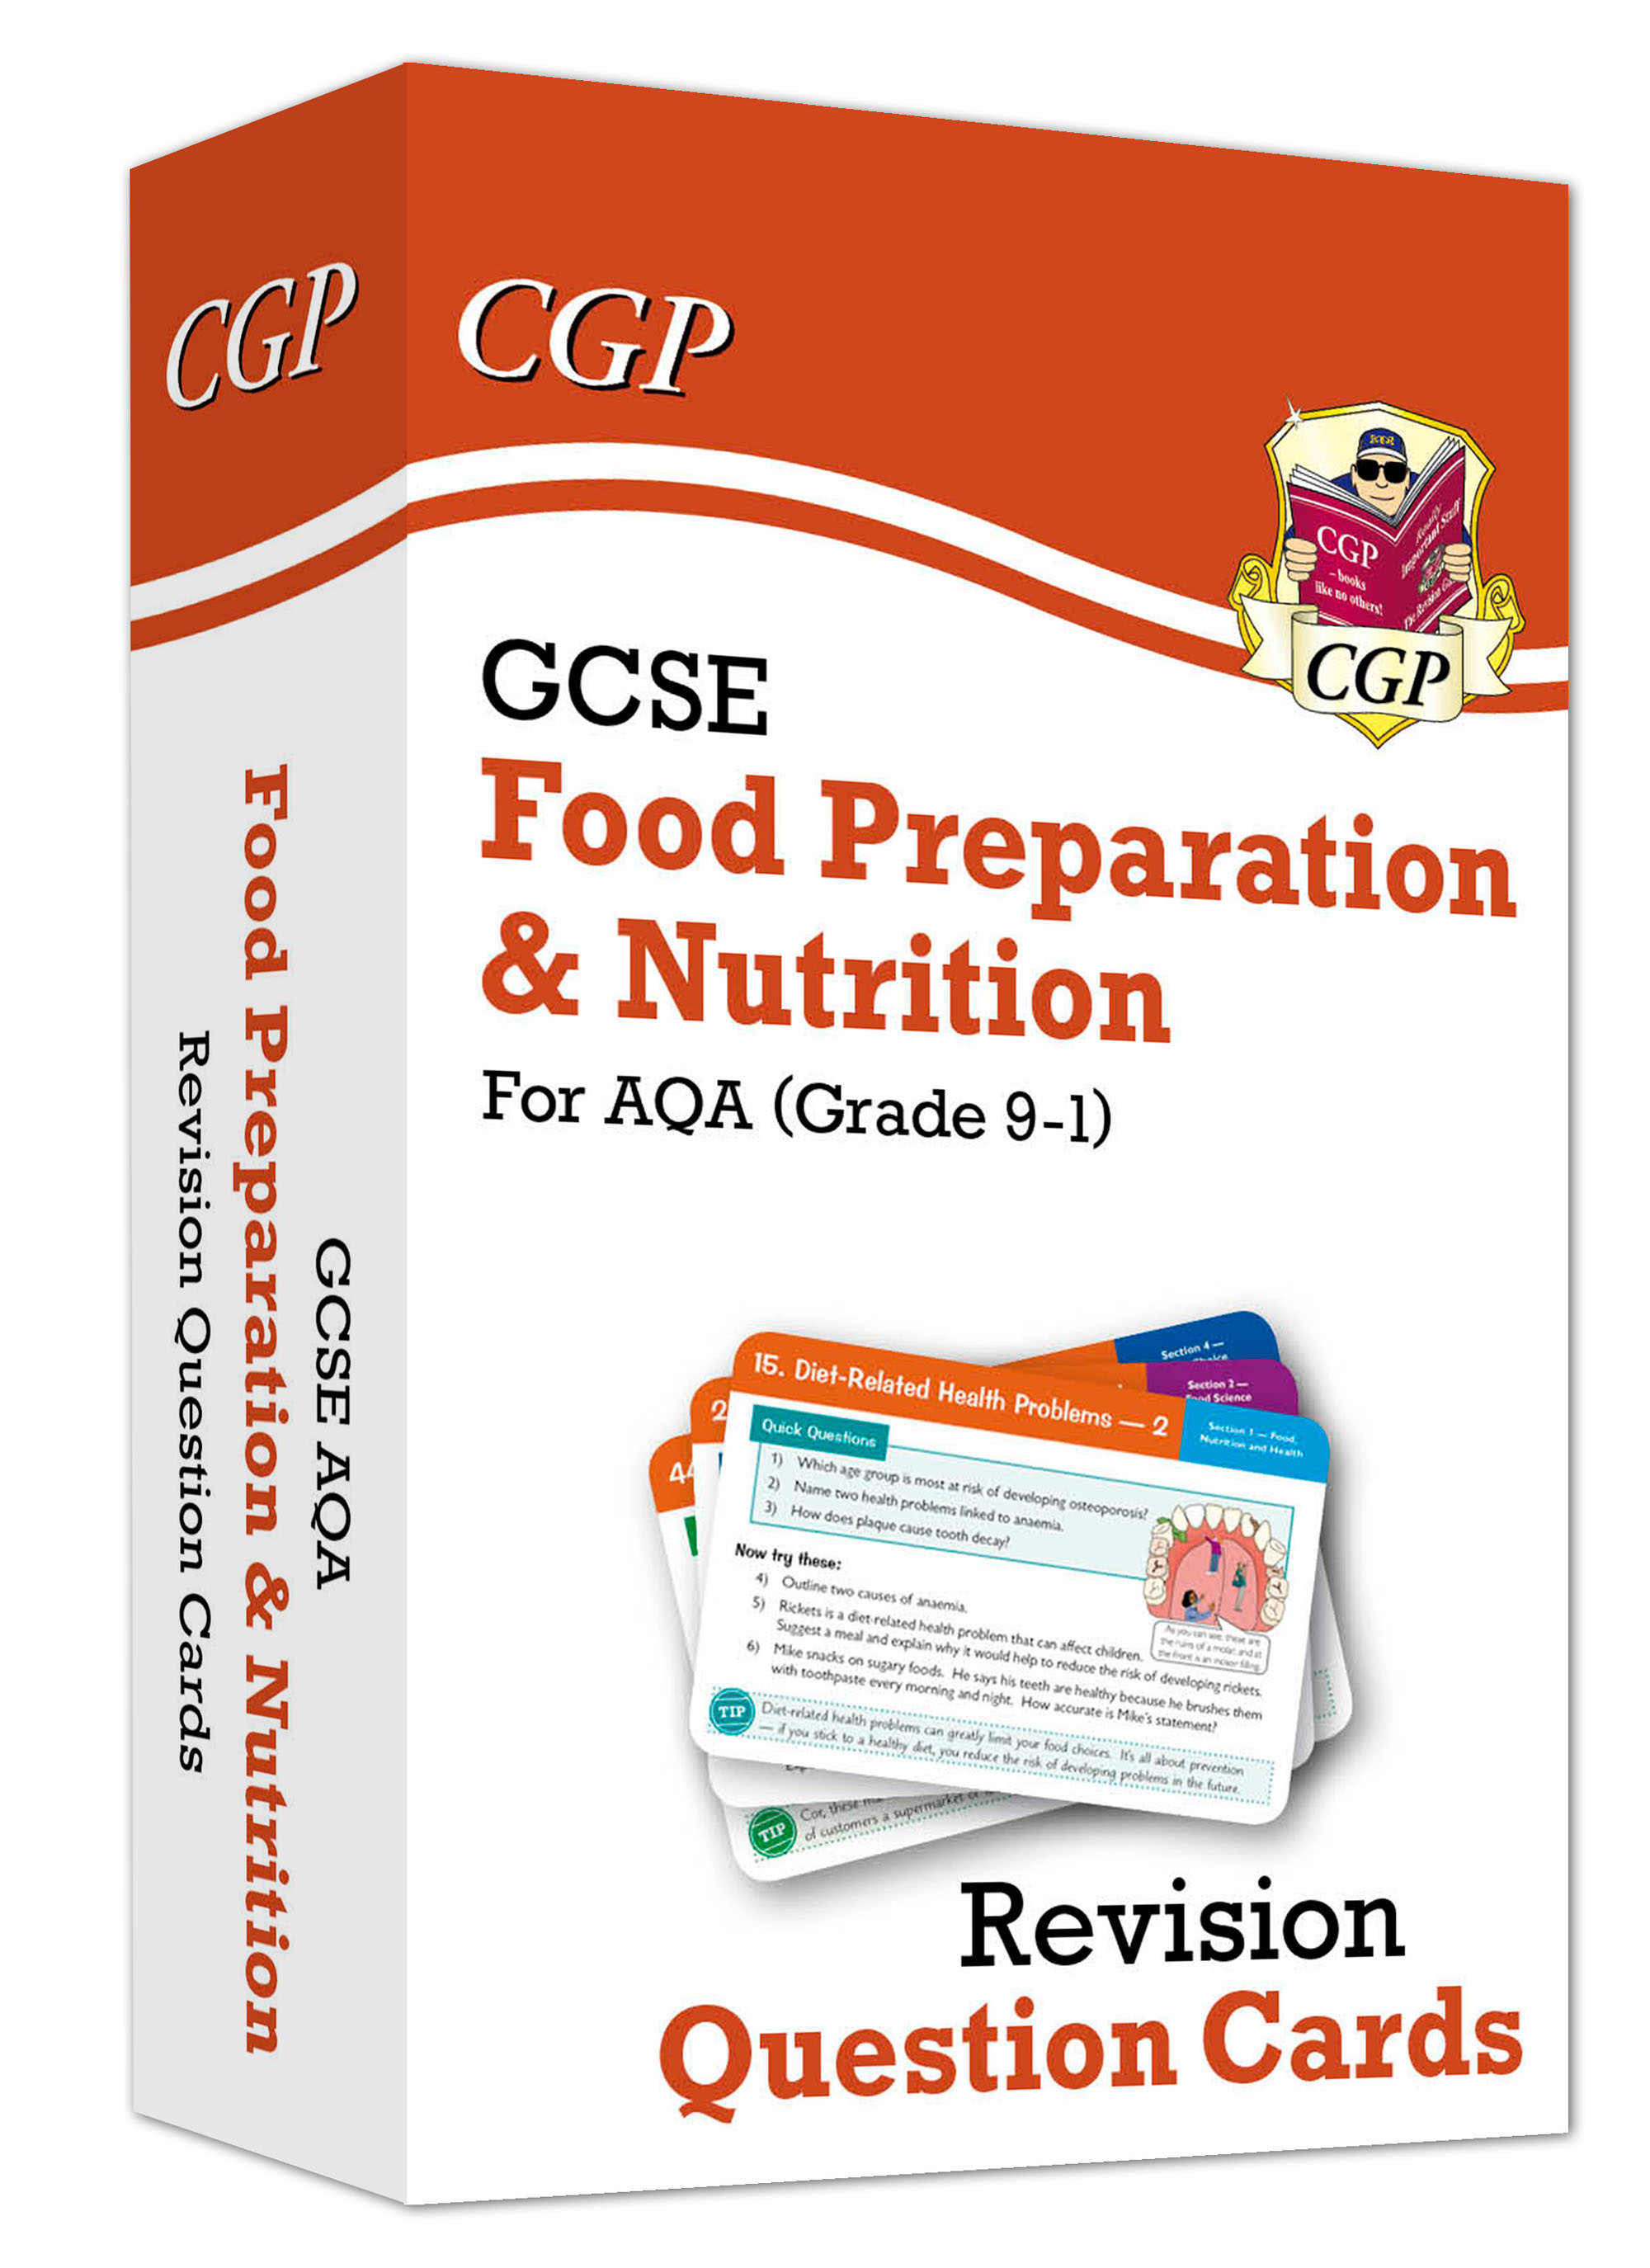 FNAF41DK - New Grade 9-1 GCSE Food Preparation & Nutrition AQA Revision Question Cards